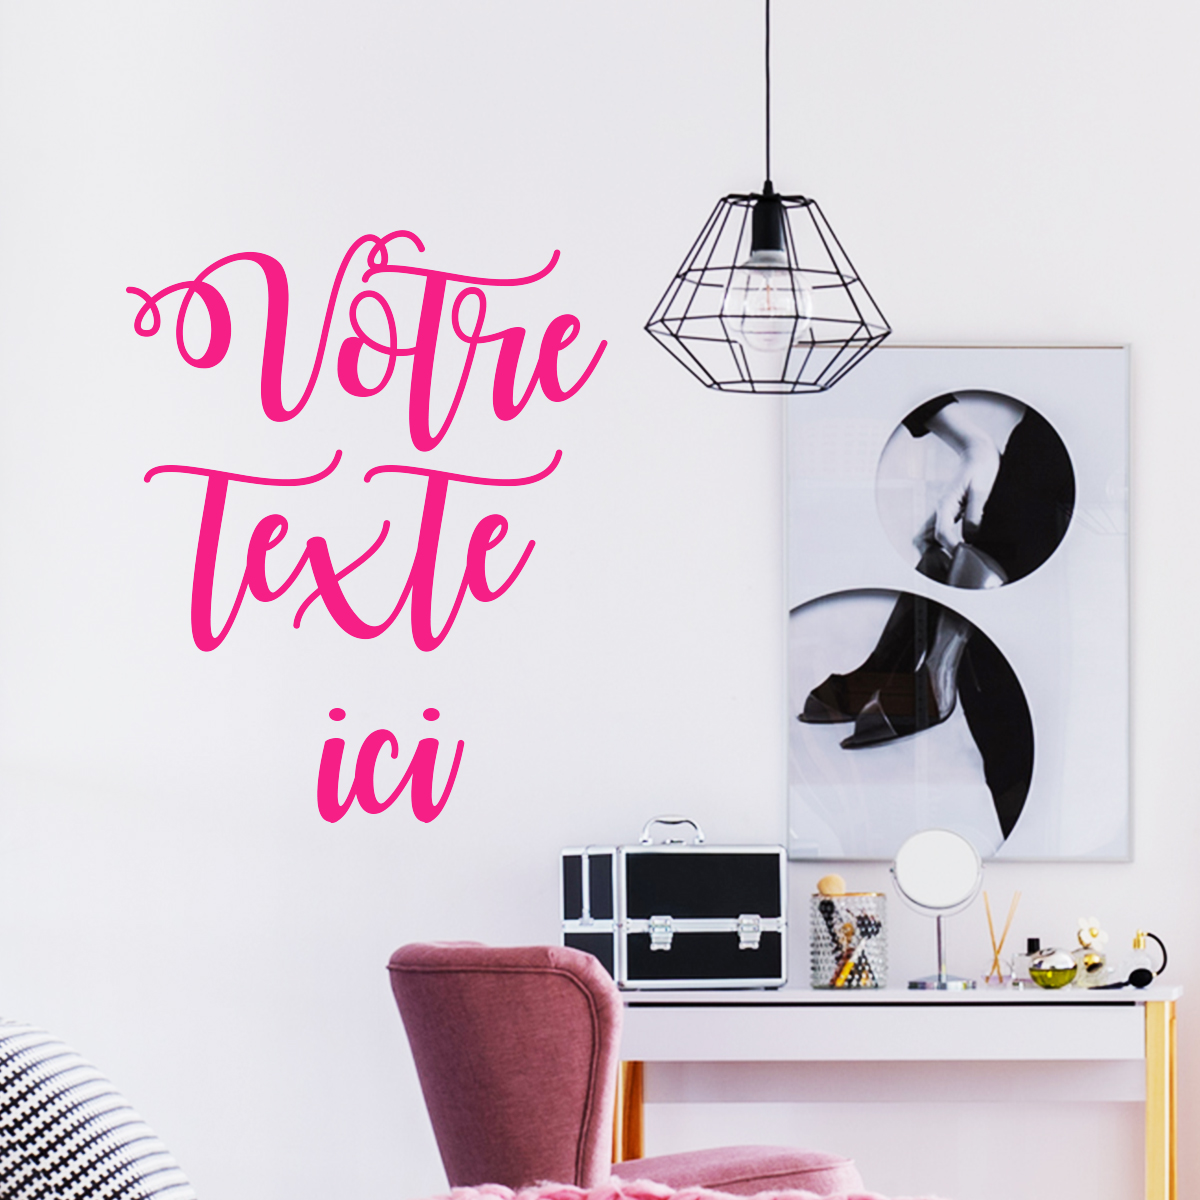 sticker personnalis avec votre texte stickers chambre enfants pr noms ambiance sticker. Black Bedroom Furniture Sets. Home Design Ideas